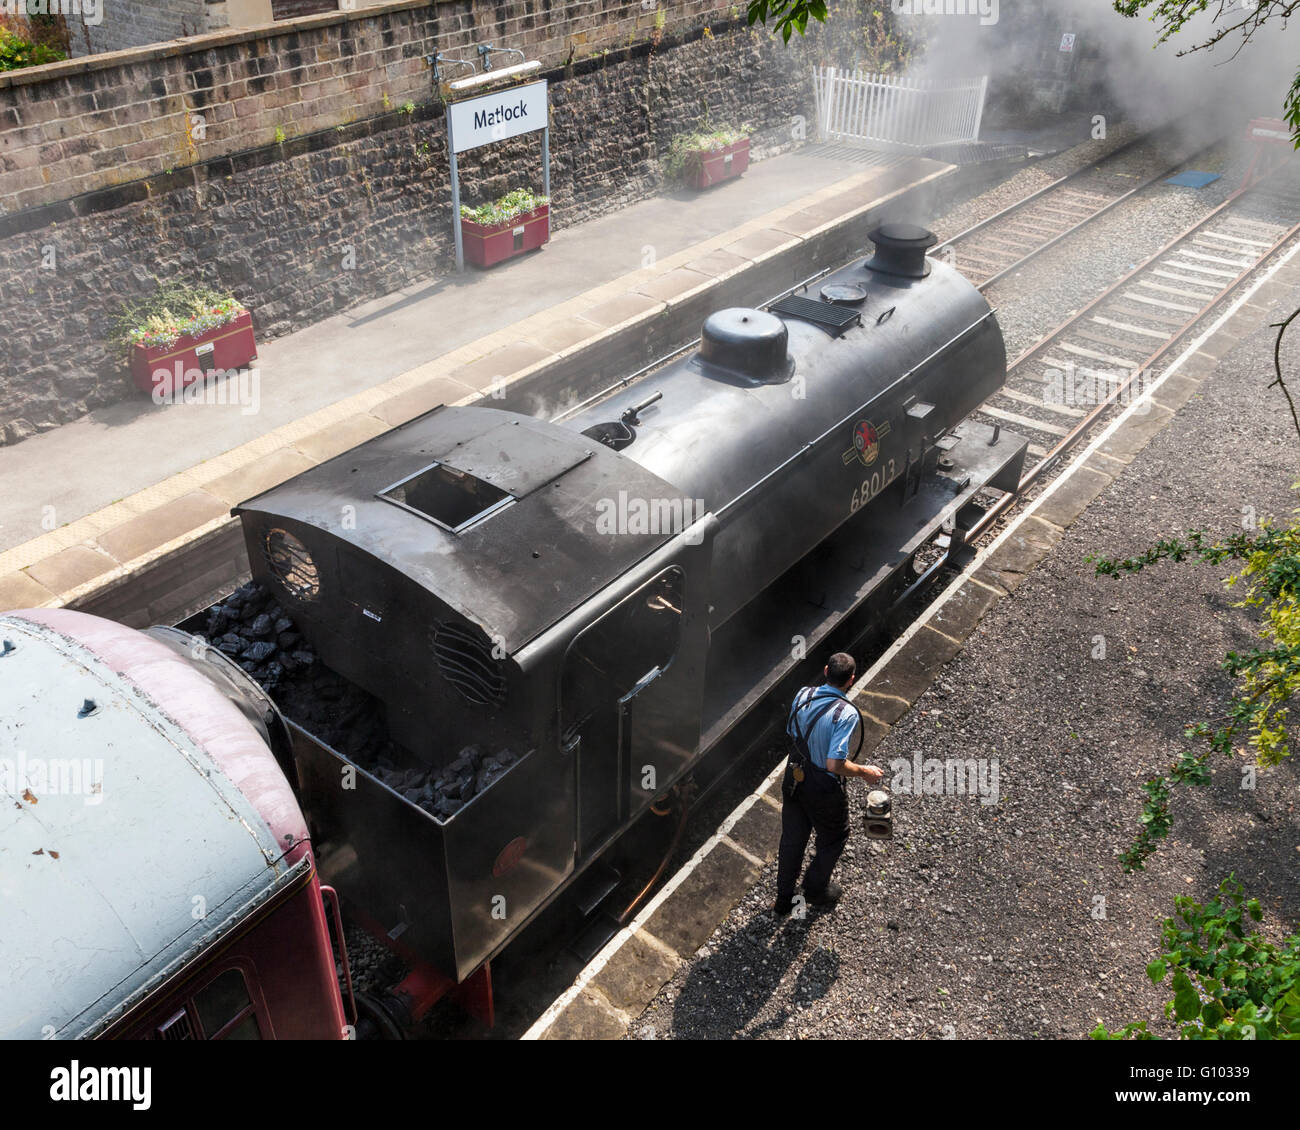 Peak Rail steam locomotive no. 68013 and engine driver at Matlock Station, Derbyshire, England, UK - Stock Image